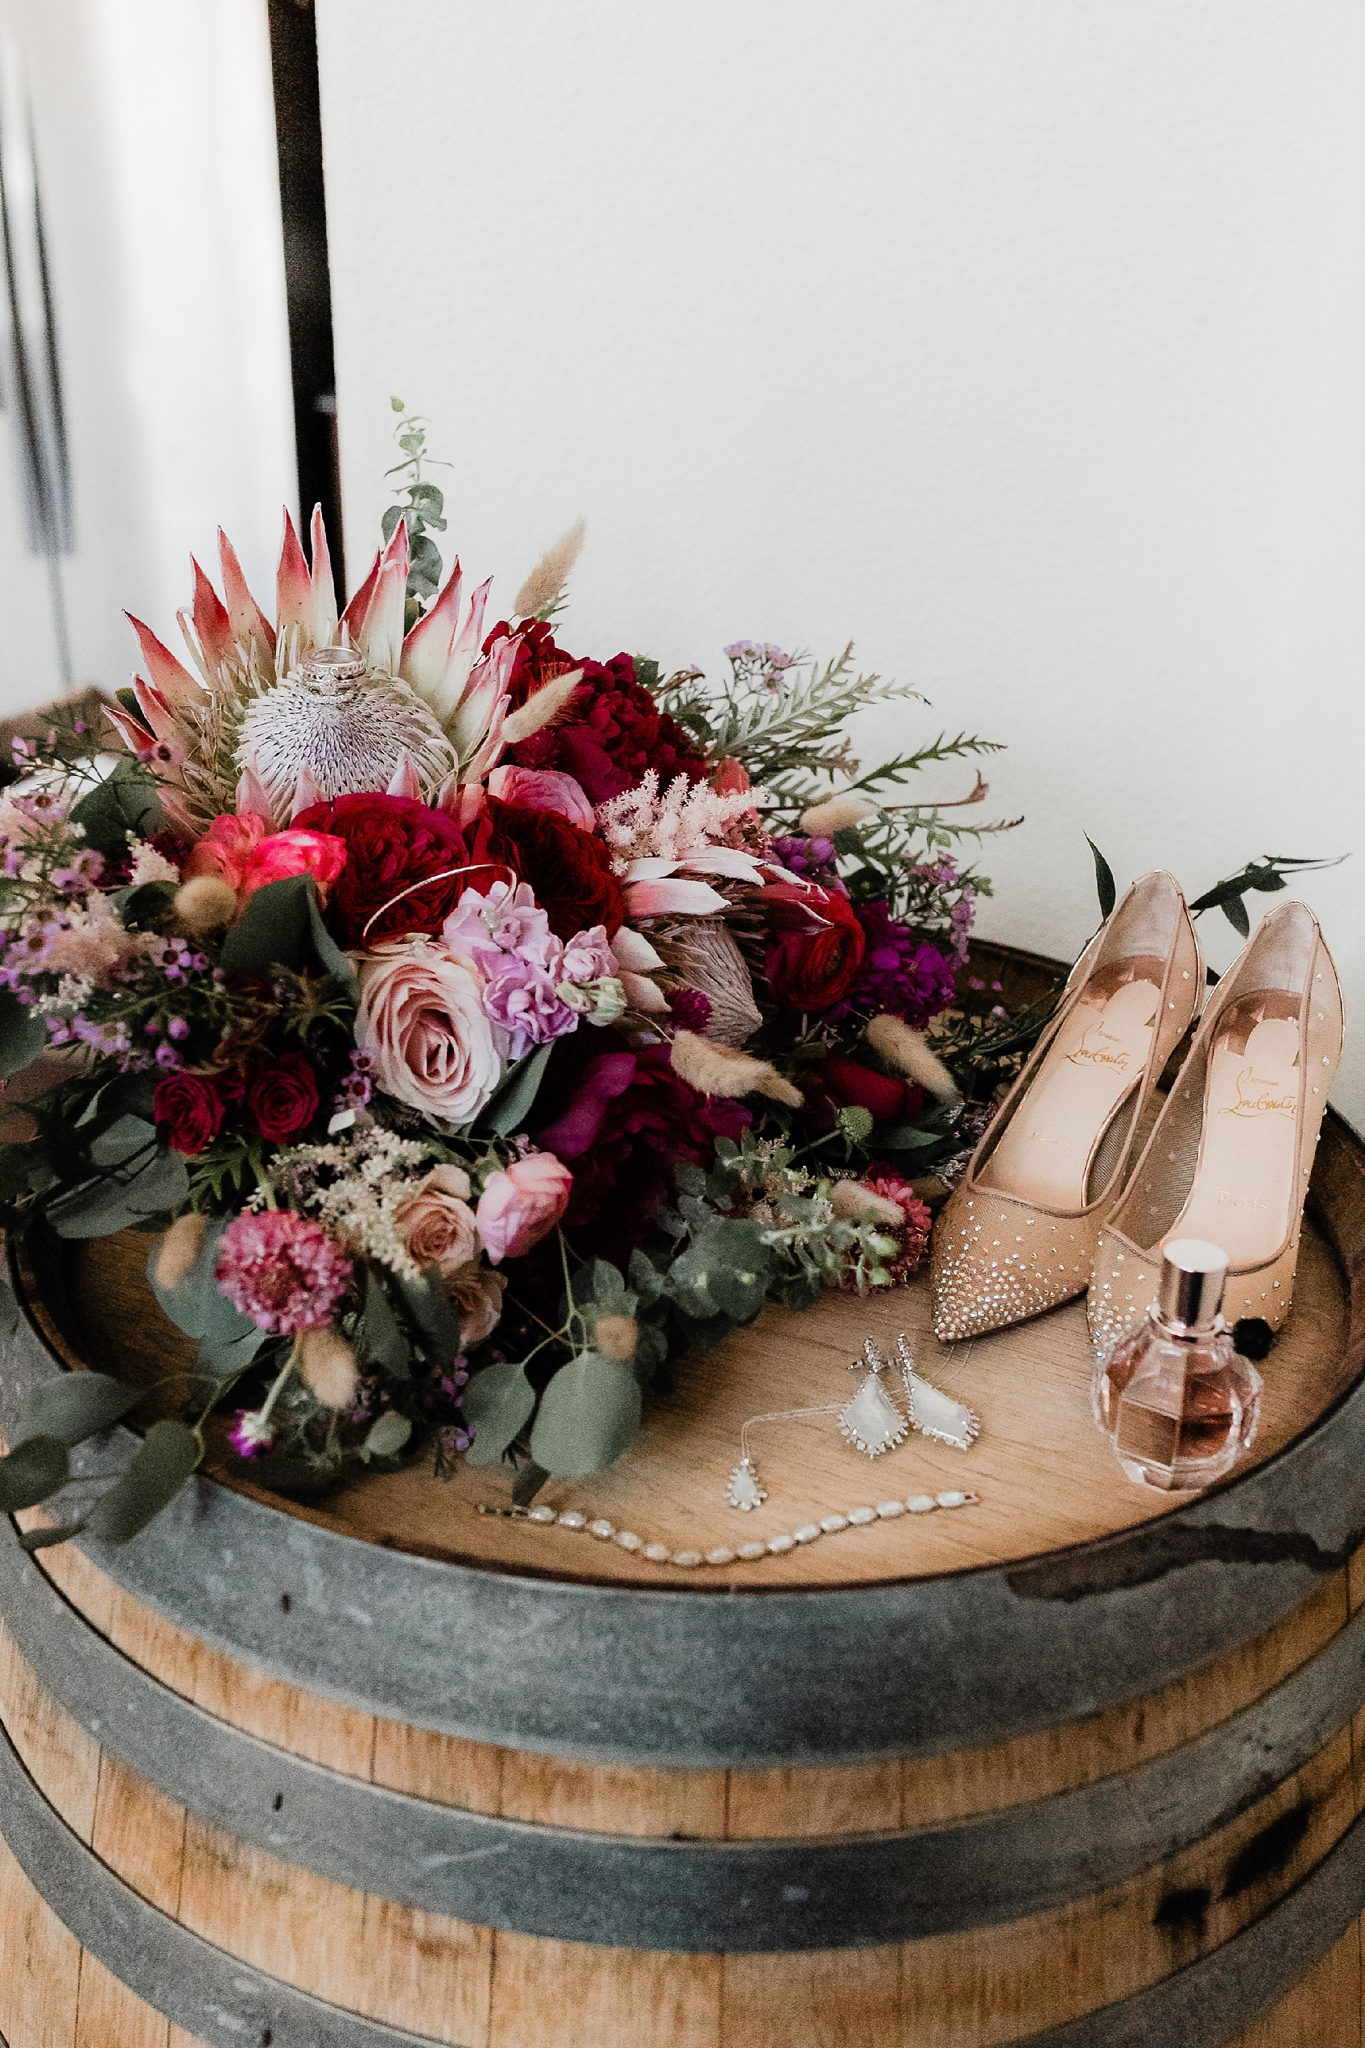 Alicia+lucia+photography+-+albuquerque+wedding+photographer+-+santa+fe+wedding+photography+-+new+mexico+wedding+photographer+-+new+mexico+wedding+-+new+mexico+wedding+-+colorado+wedding+-+bridal+shoes+-+bridal+inspo_0002.jpg